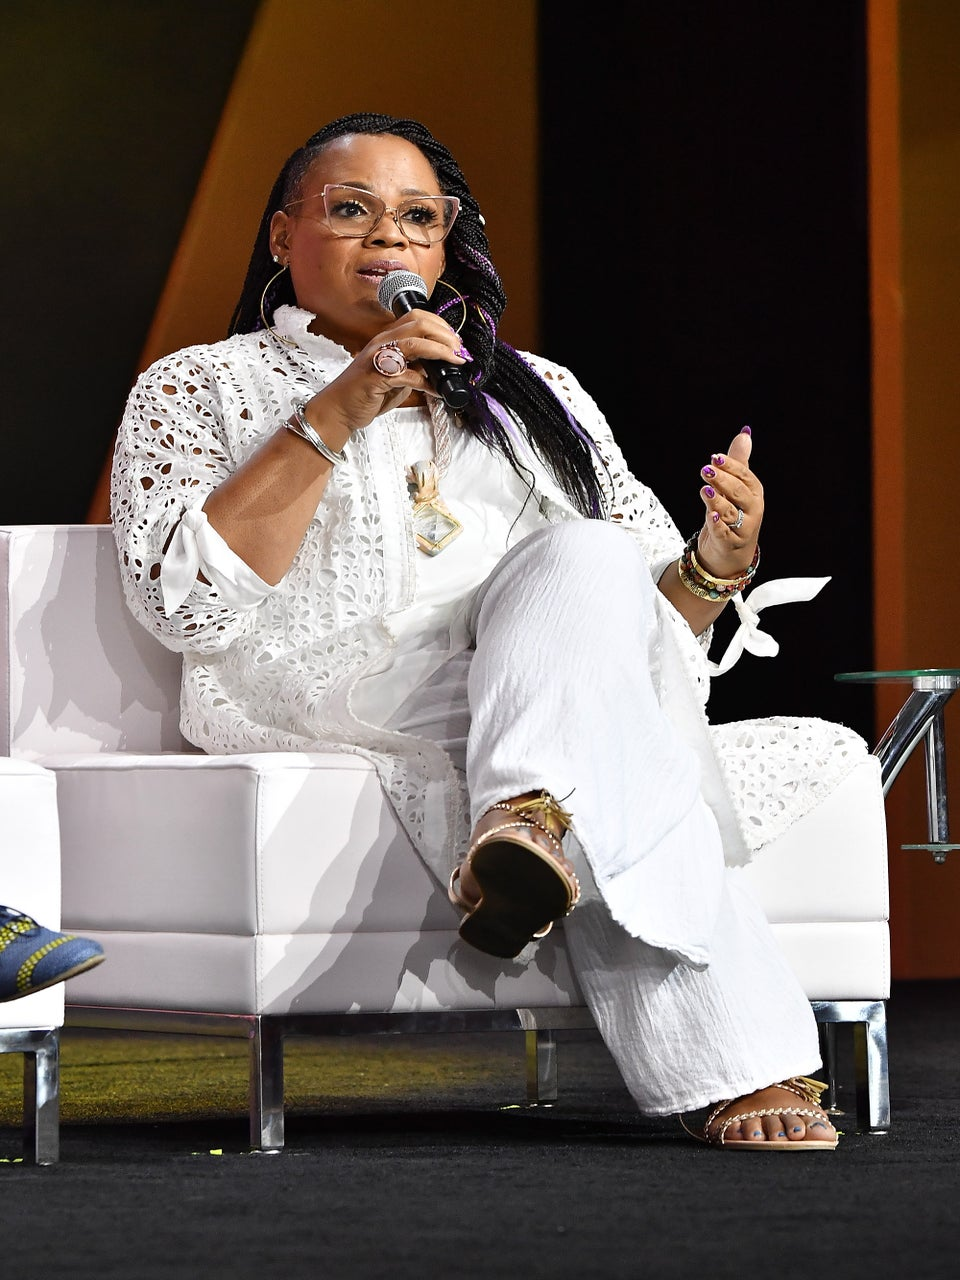 ESSENCE's Inaugural E-Suite Event Brought Black Female Entrepreneurs and Business Leaders Together To Inspire and Create Dreams